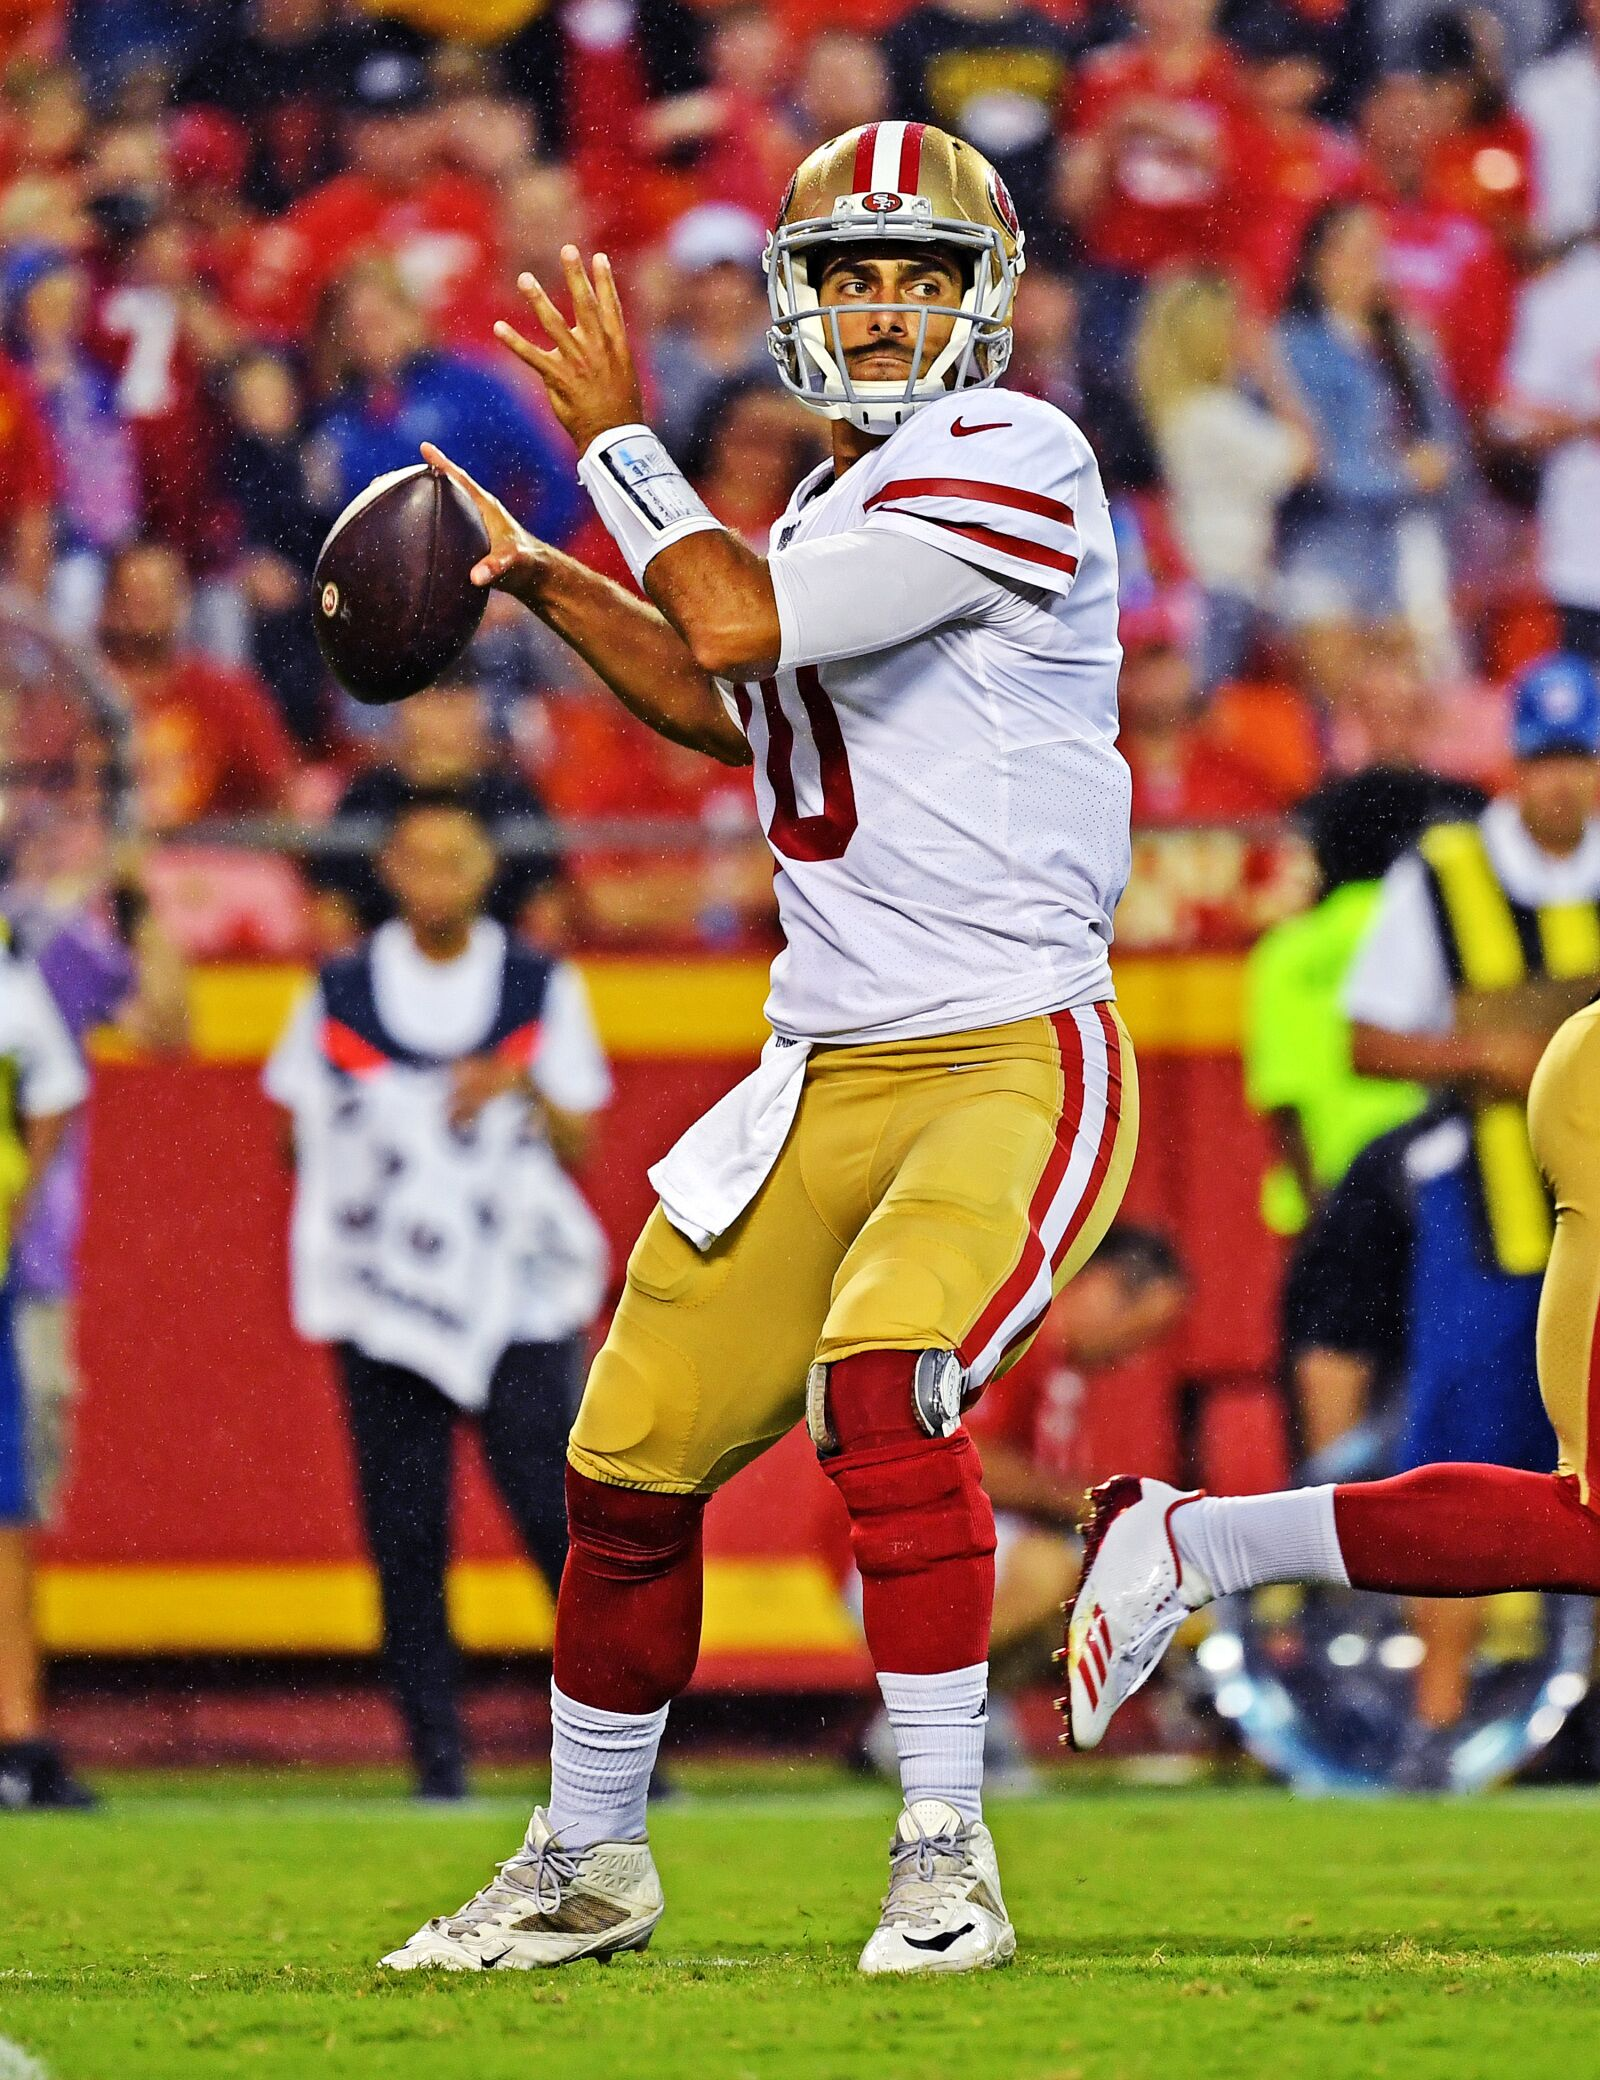 Jimmy Garoppolo silences critics during 49ers 27-17 win vs. Chiefs